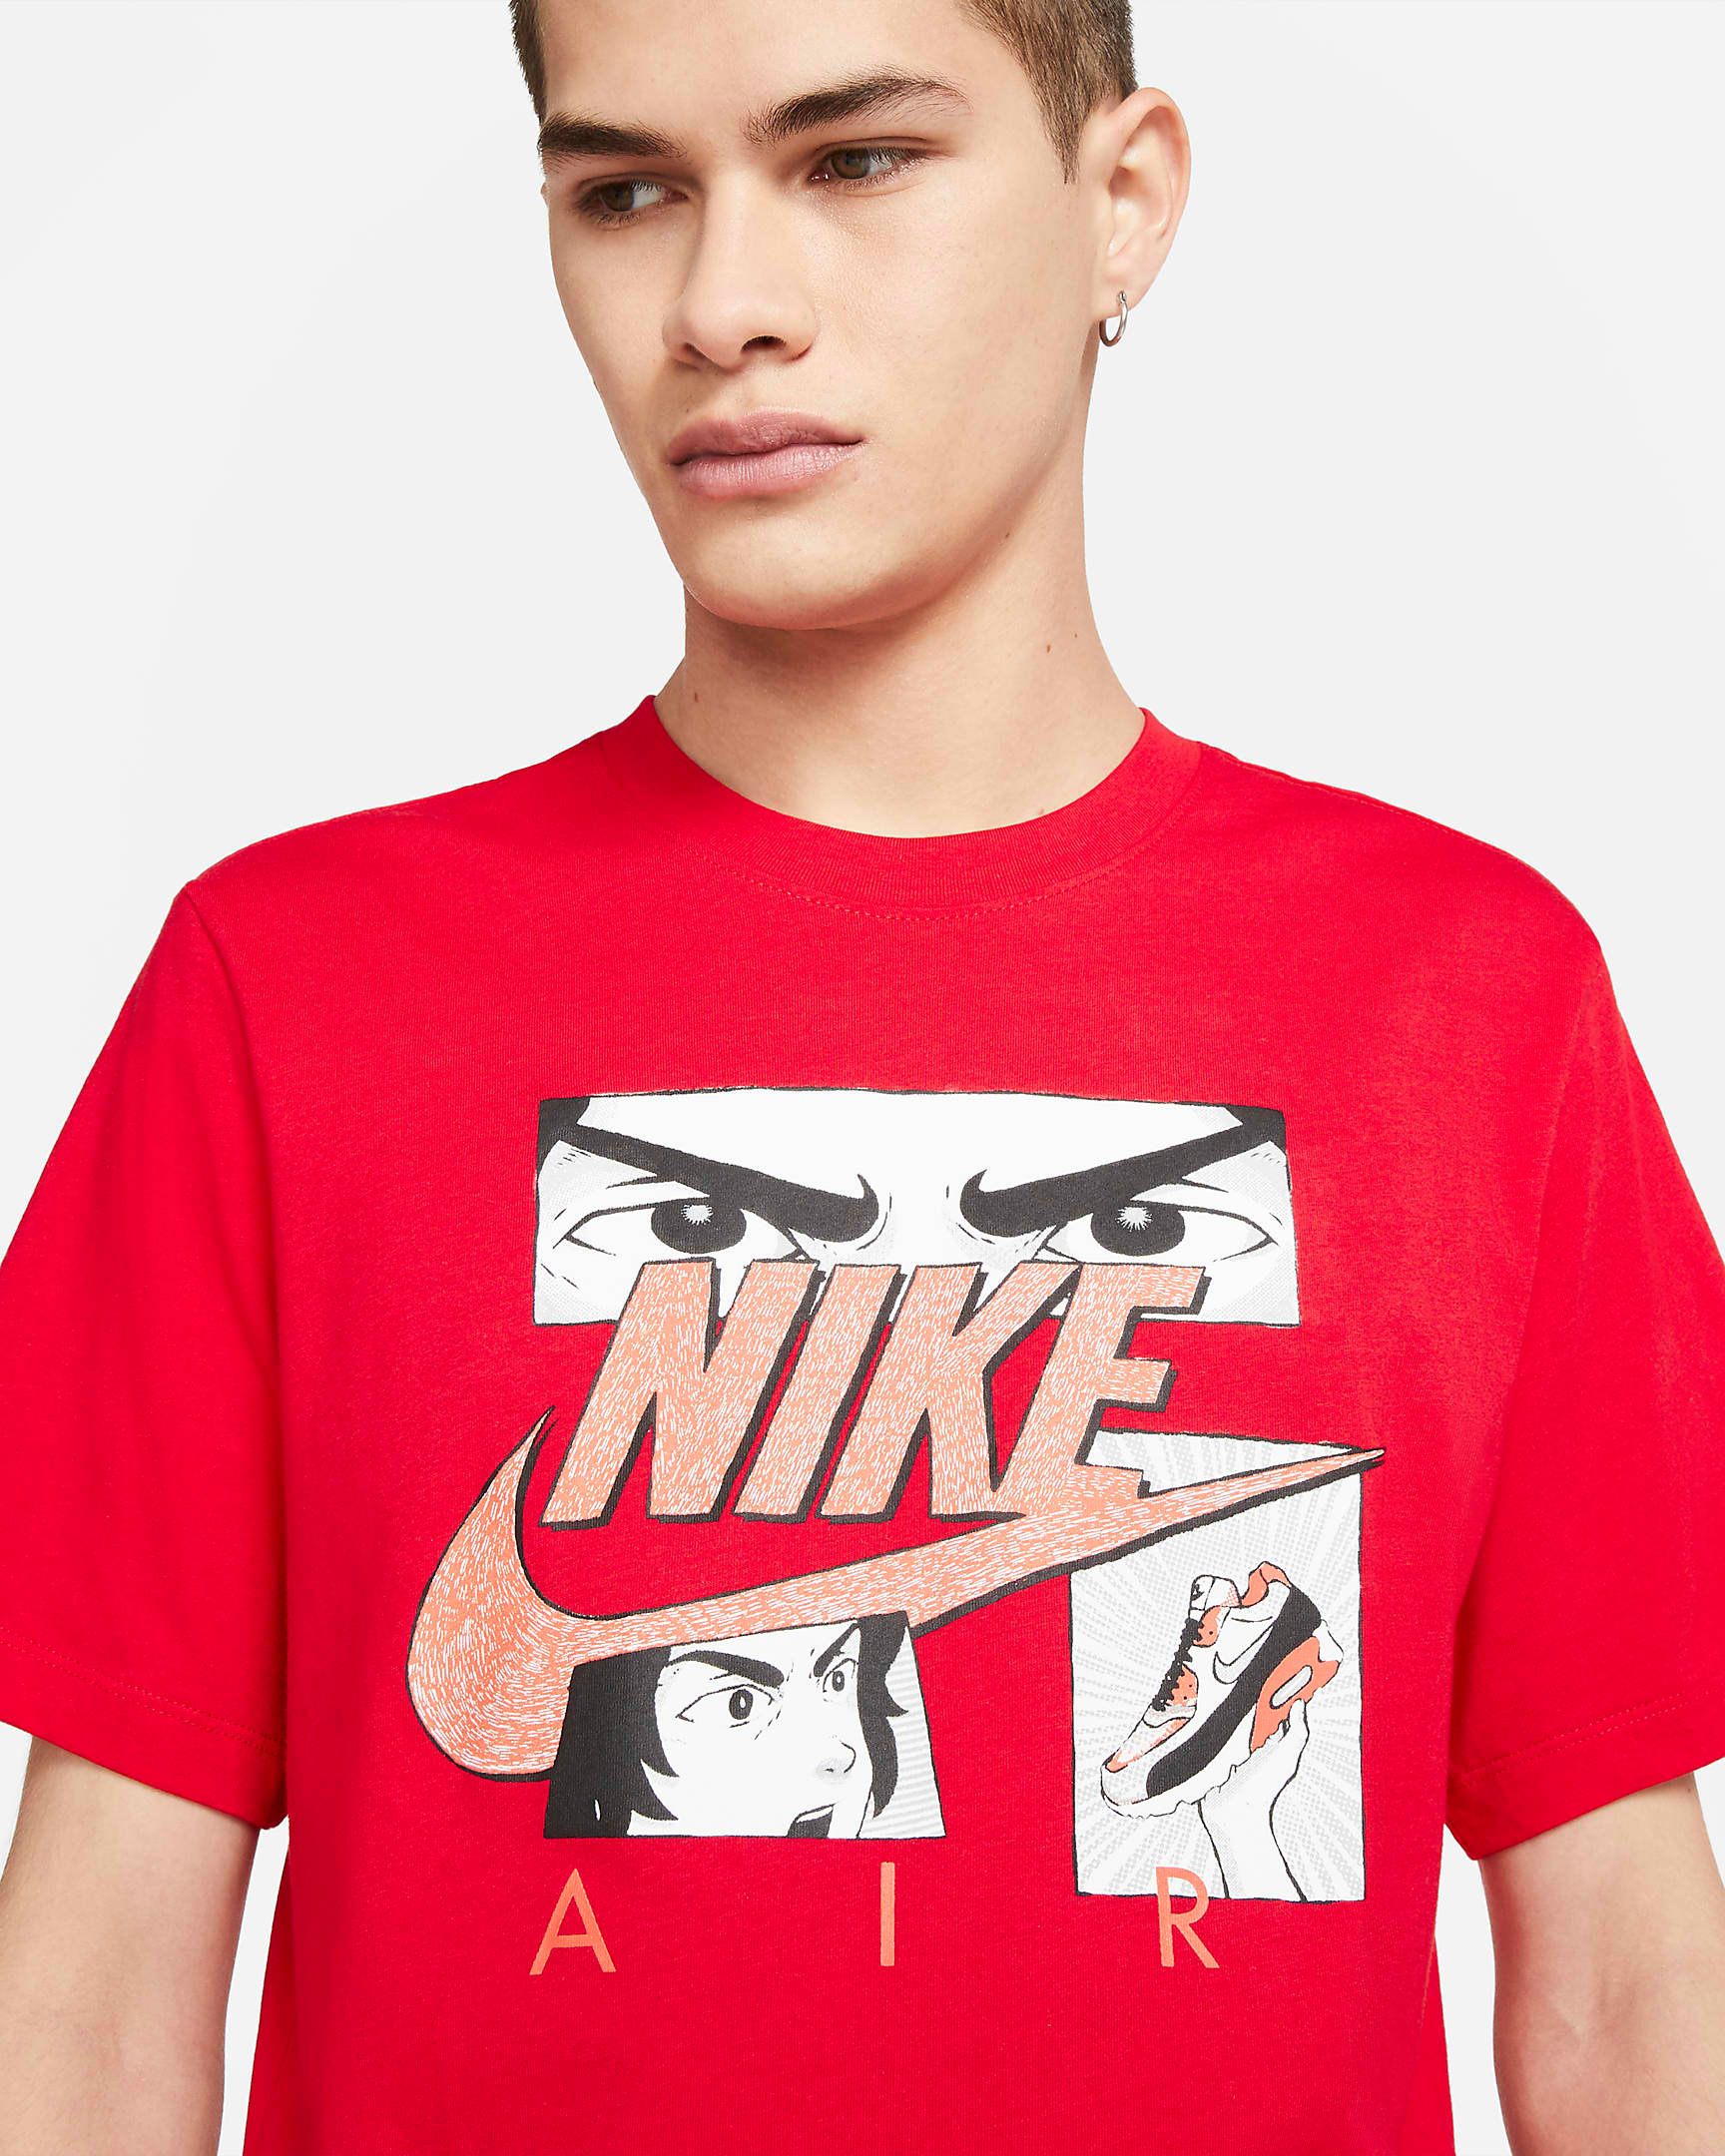 nike-air-max-90-infrared-radiant-red-manga-shirt-red-1